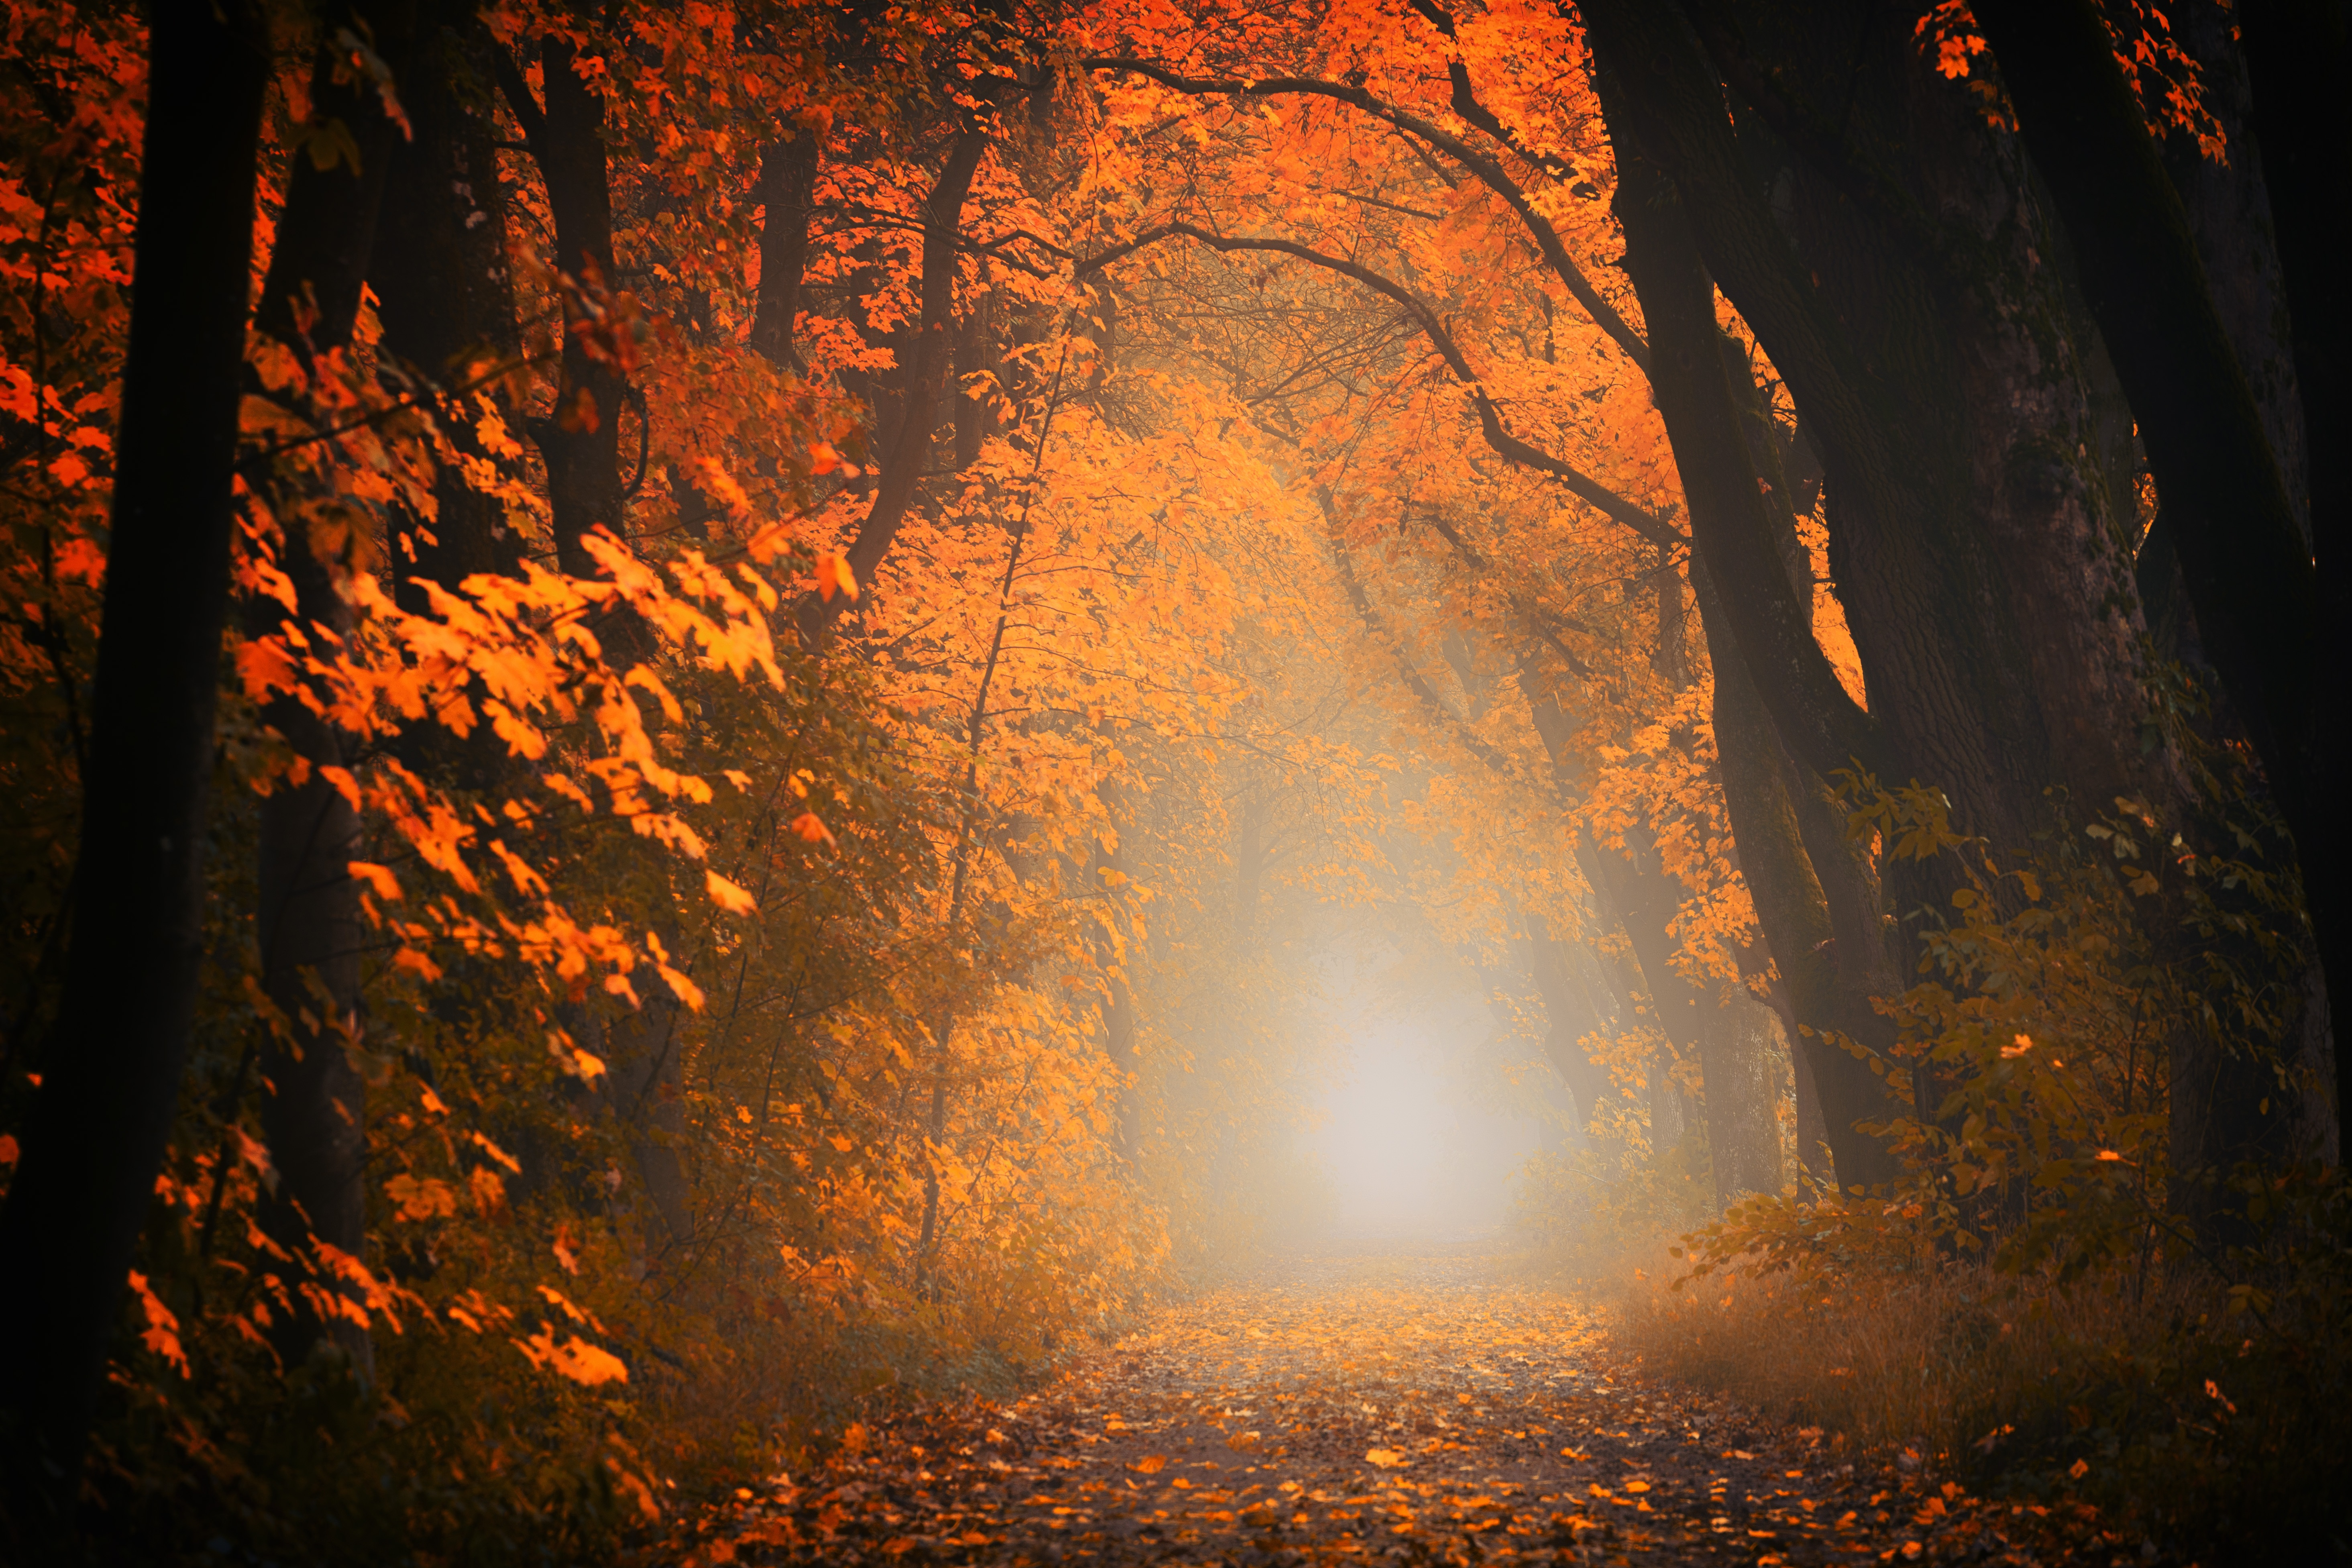 130488 download wallpaper Nature, Trees, Autumn, Forest, Fog, Path, Foliage screensavers and pictures for free